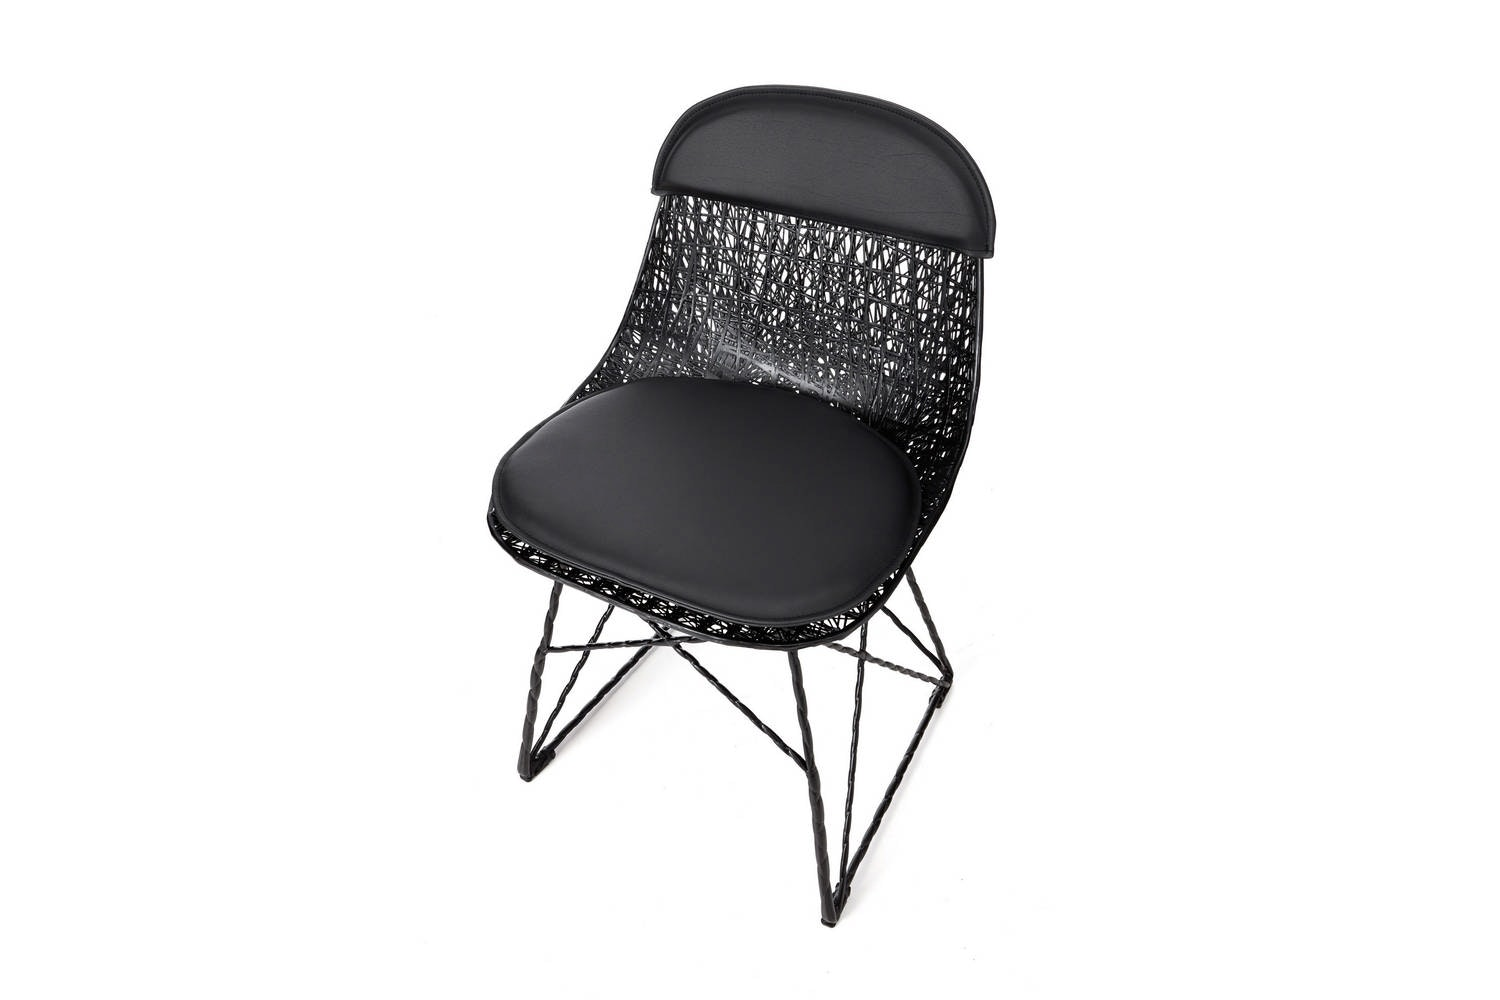 Pad & Cap for Carbon Chair by Bertjan Pot & Marcel Wanders for Moooi